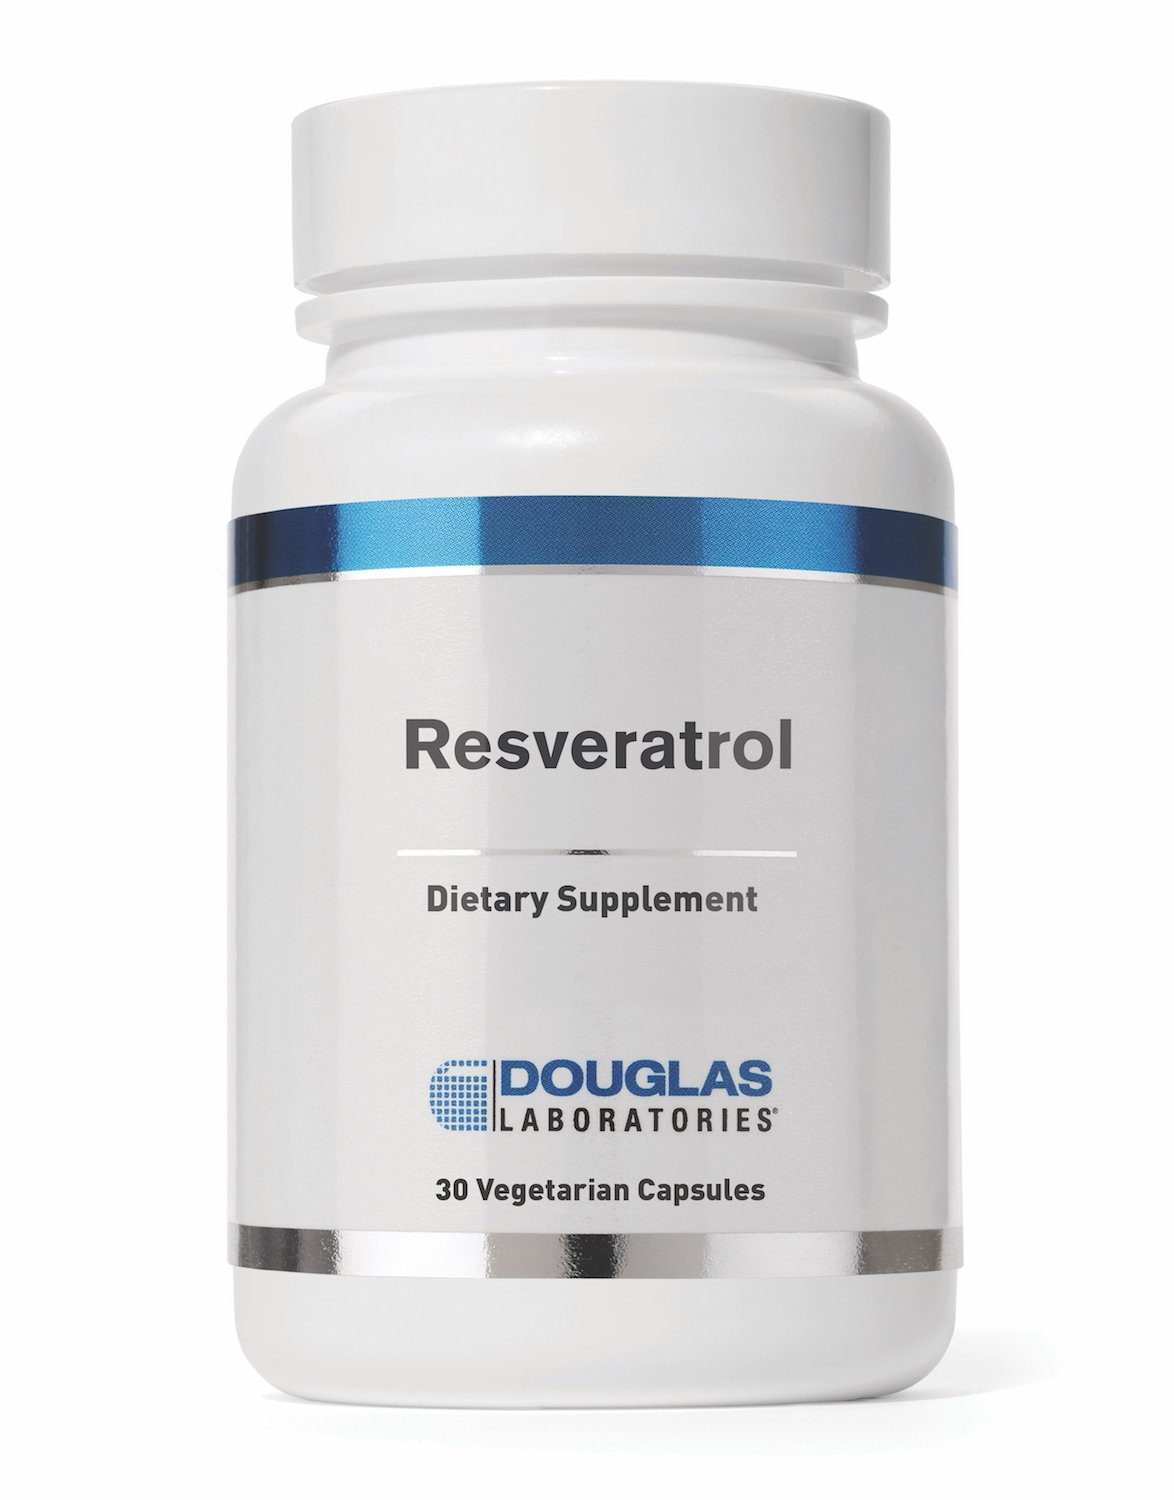 Douglas Laboratories - Resveratrol - Antioxidant Support for Cardiovascular, Neurological, Metabolic and Mitochondrial Health* - 30 Capsules by Douglas Laboratories